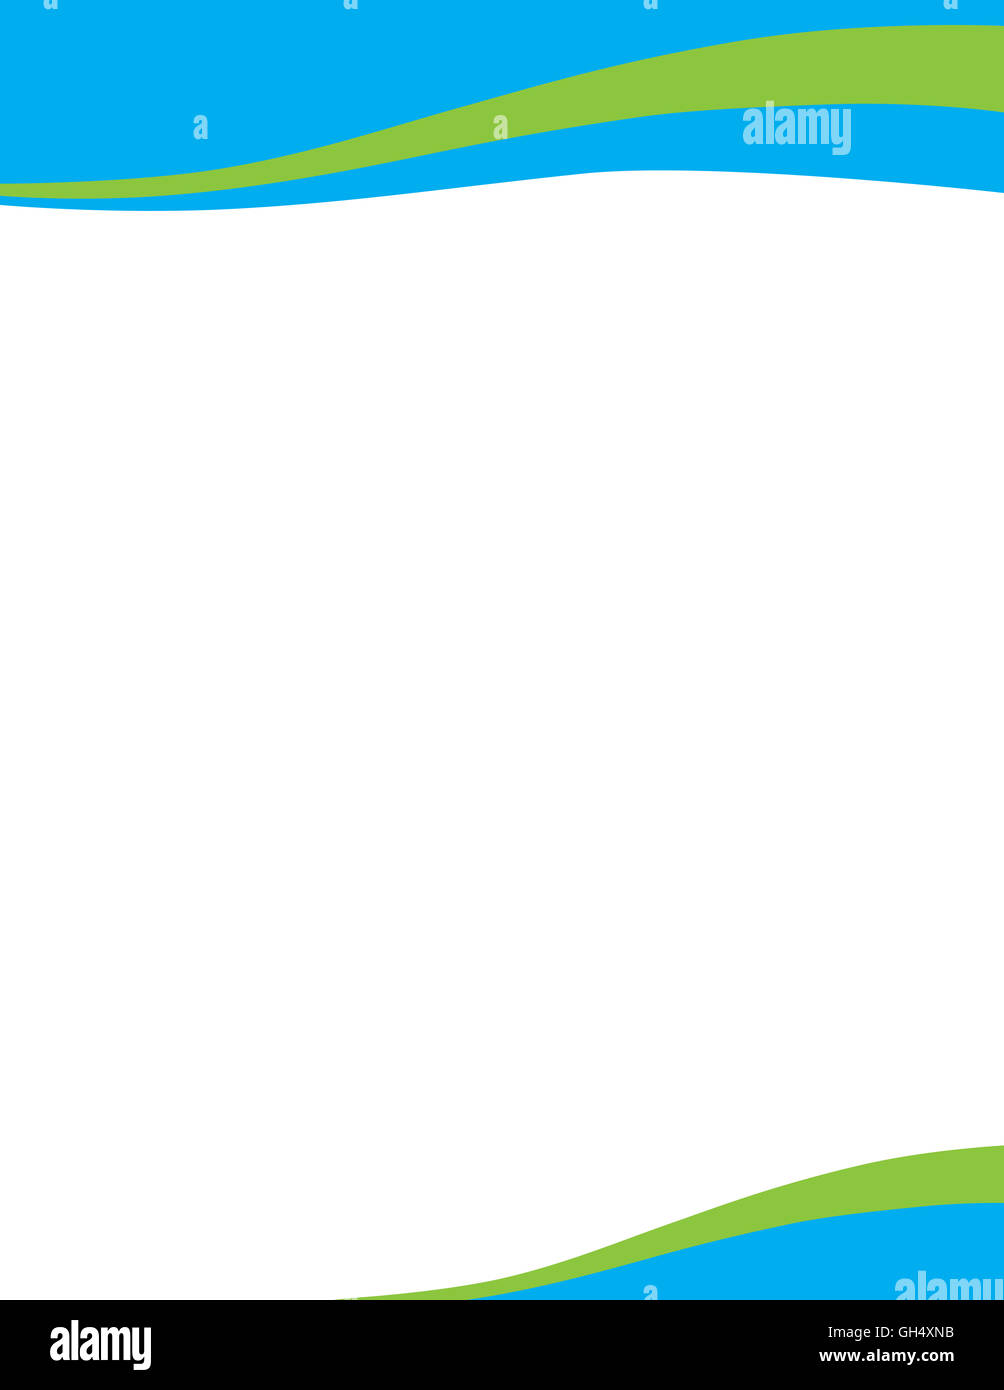 Blue Green Wave Professional Letterhead Template Stock Photo ...